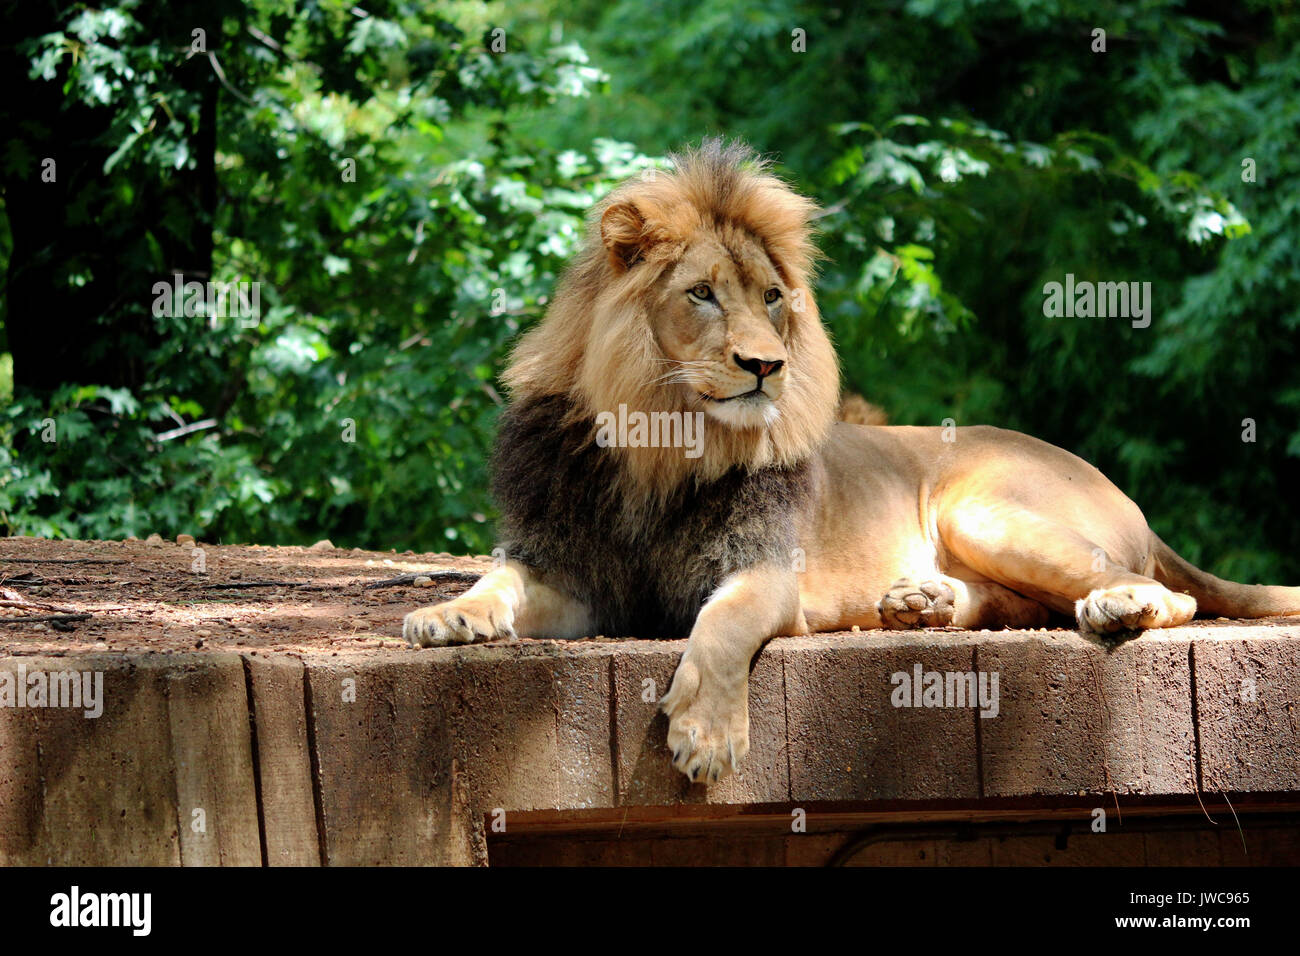 A Lion Relaxing in his Habitat with A Leafy Green Background. Stock Photo